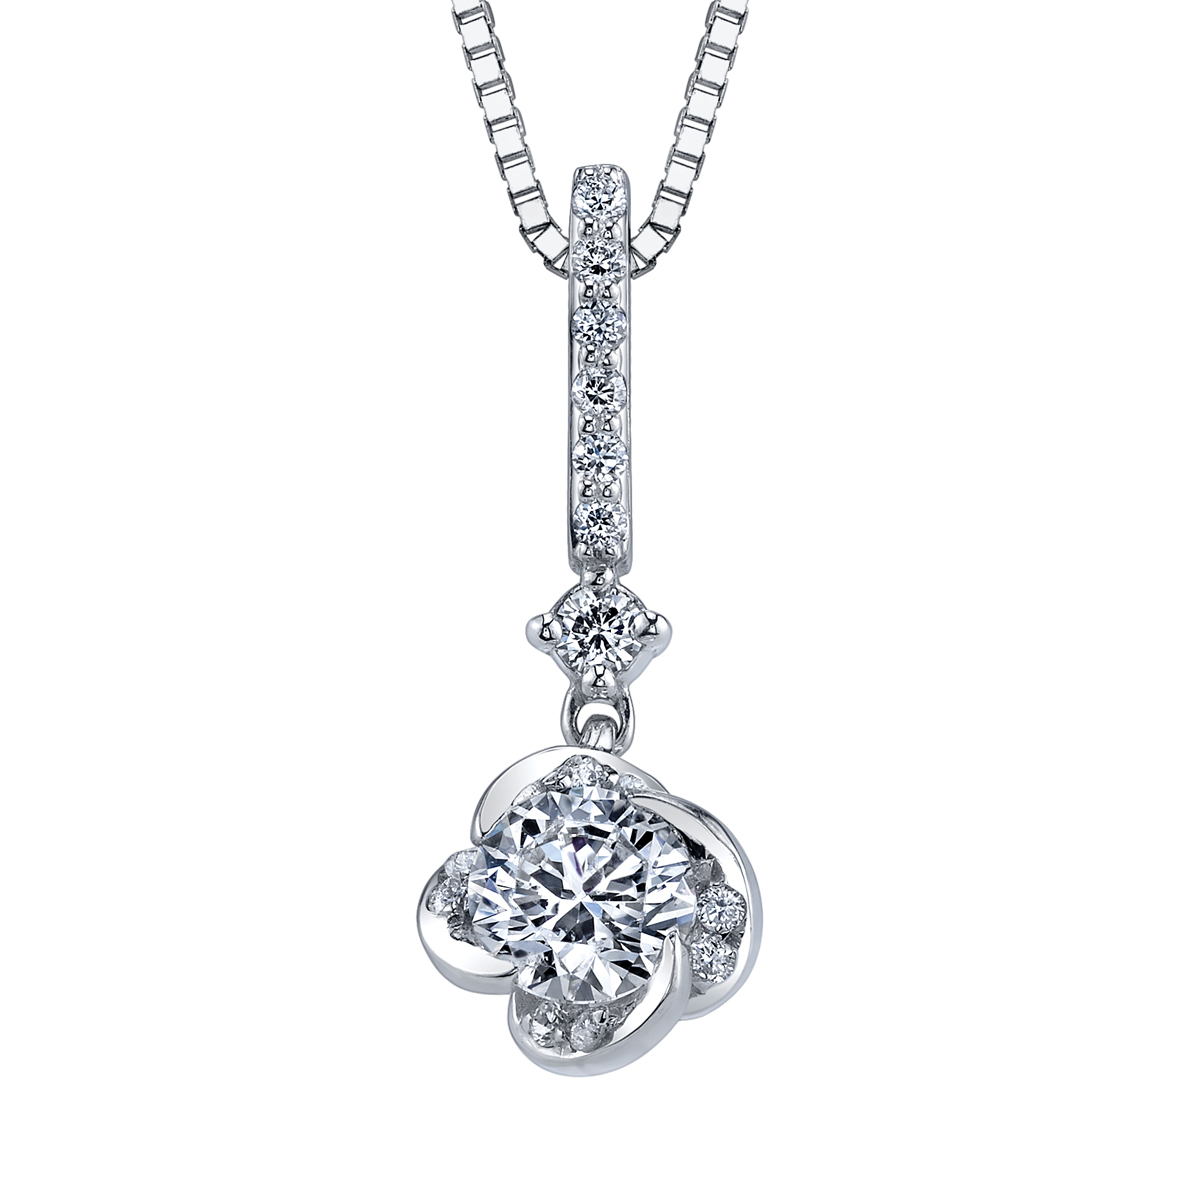 A & A Jewellery in Estevan: Maple Leaf Canadian Diamond Pendant from the Elements of love, Winds Embrace Collection